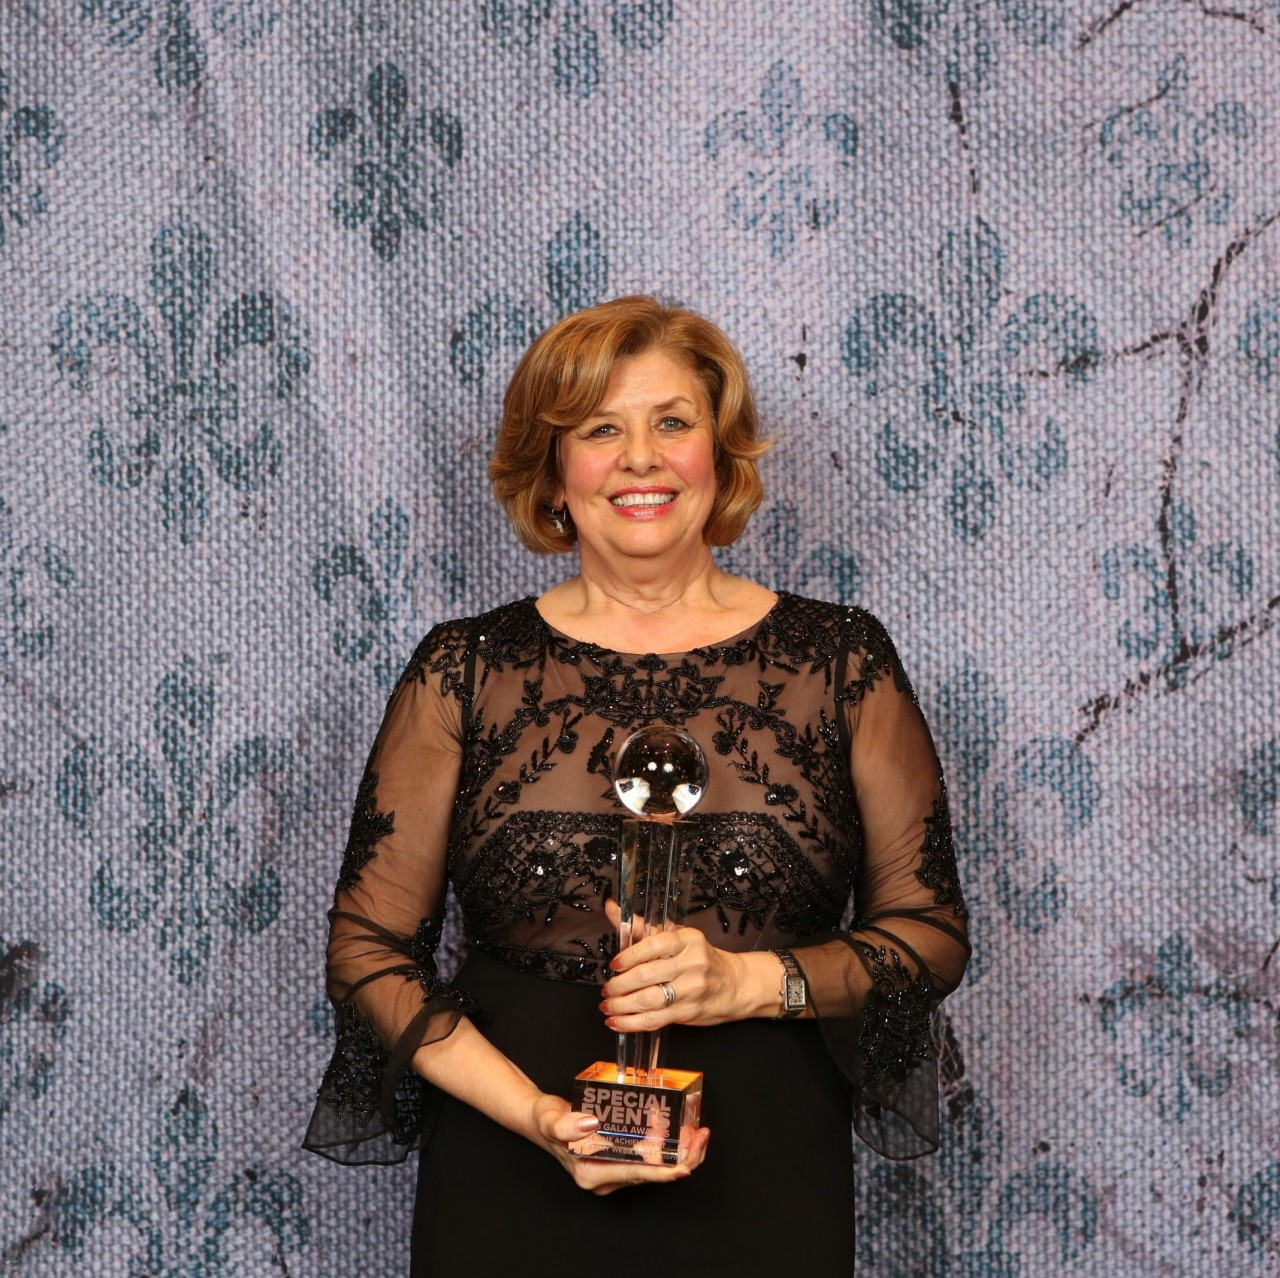 The Special Event Company CEO Recognized with One of Event Industry's Most Prestigious Accolades